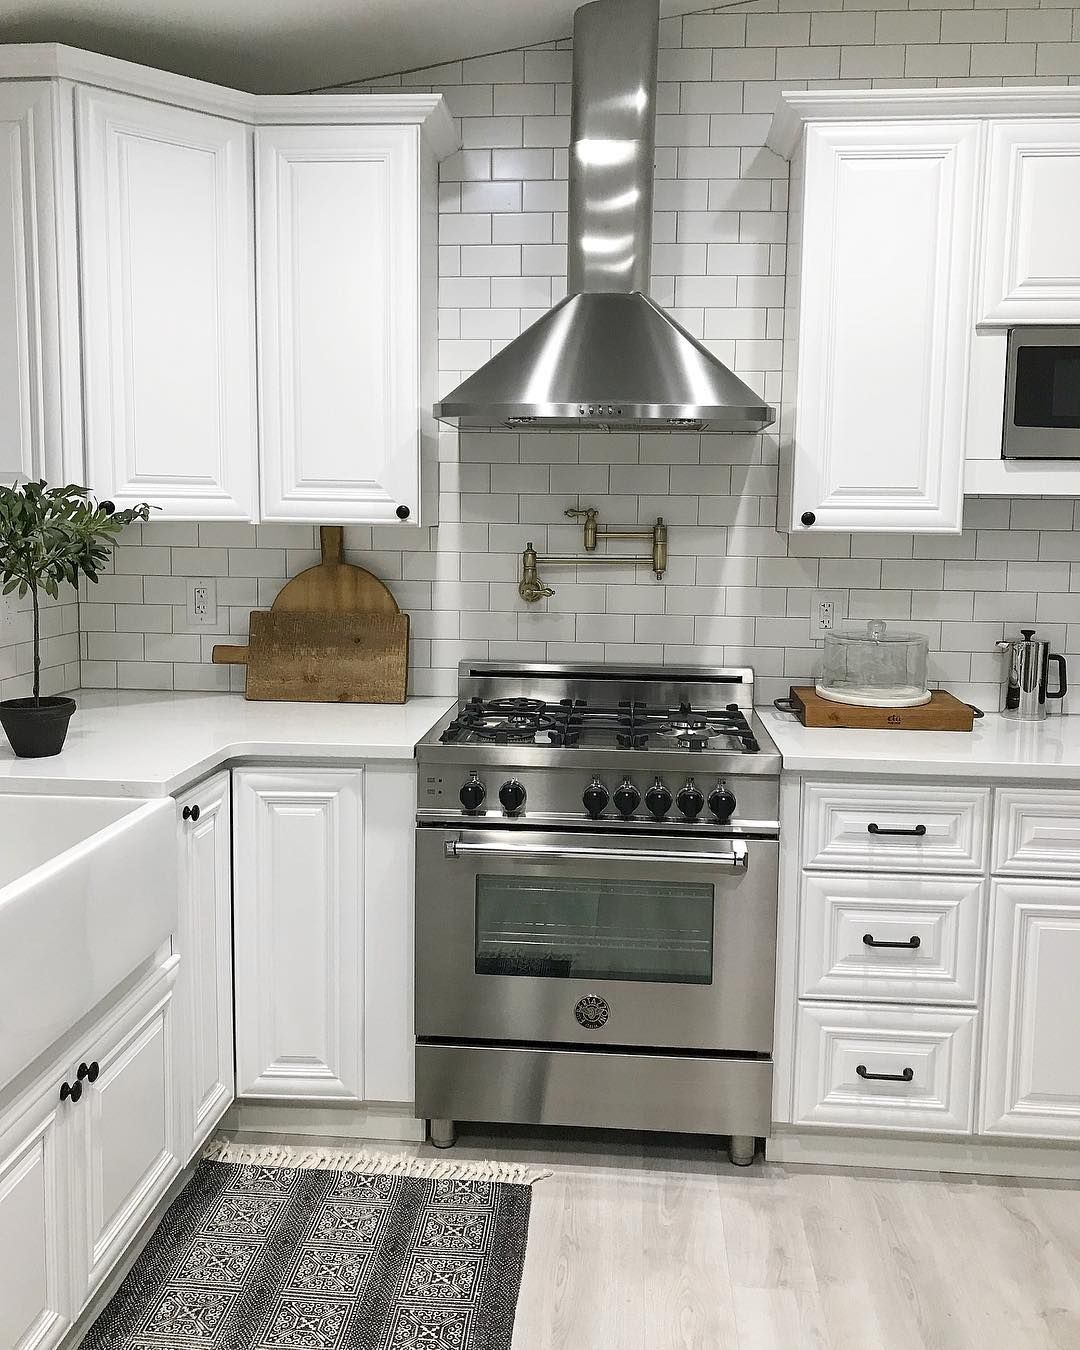 Pin By Crystal Sears On Decorating Kitchen Kitchen Remodel